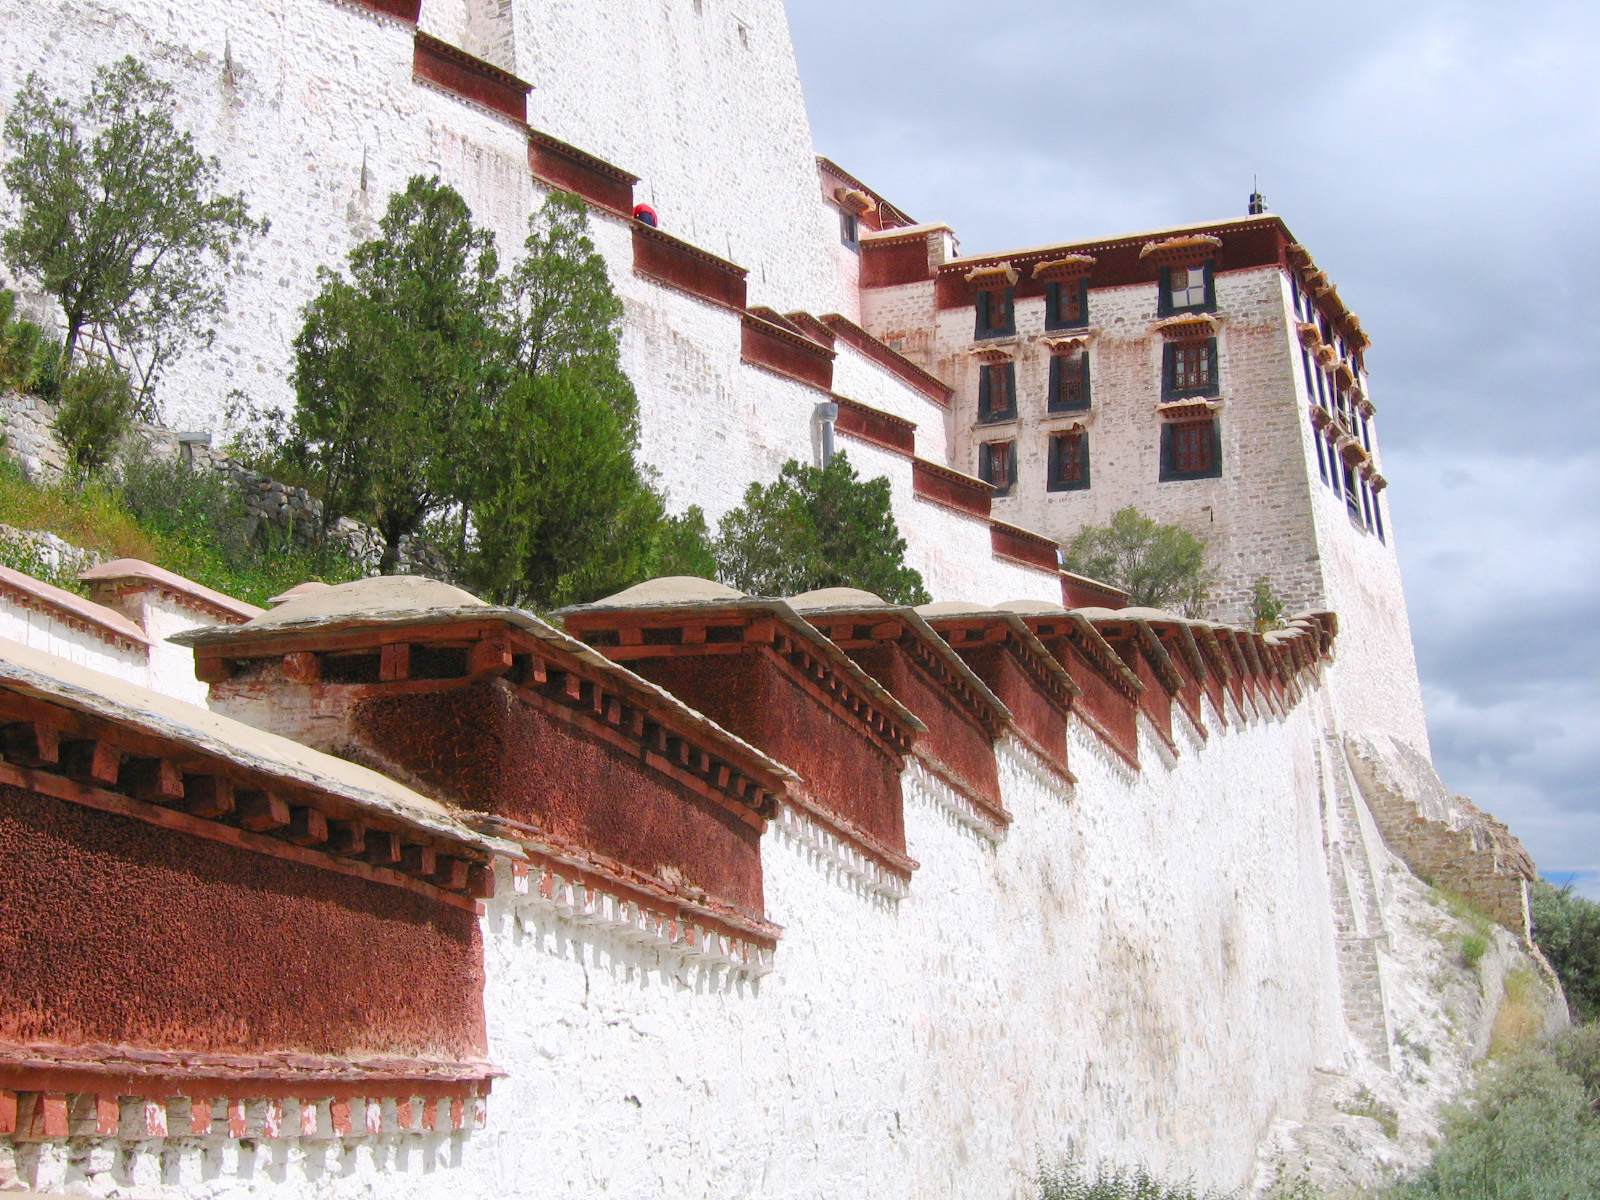 7 days in Tibet, visit the Potala Palace in Lhasa